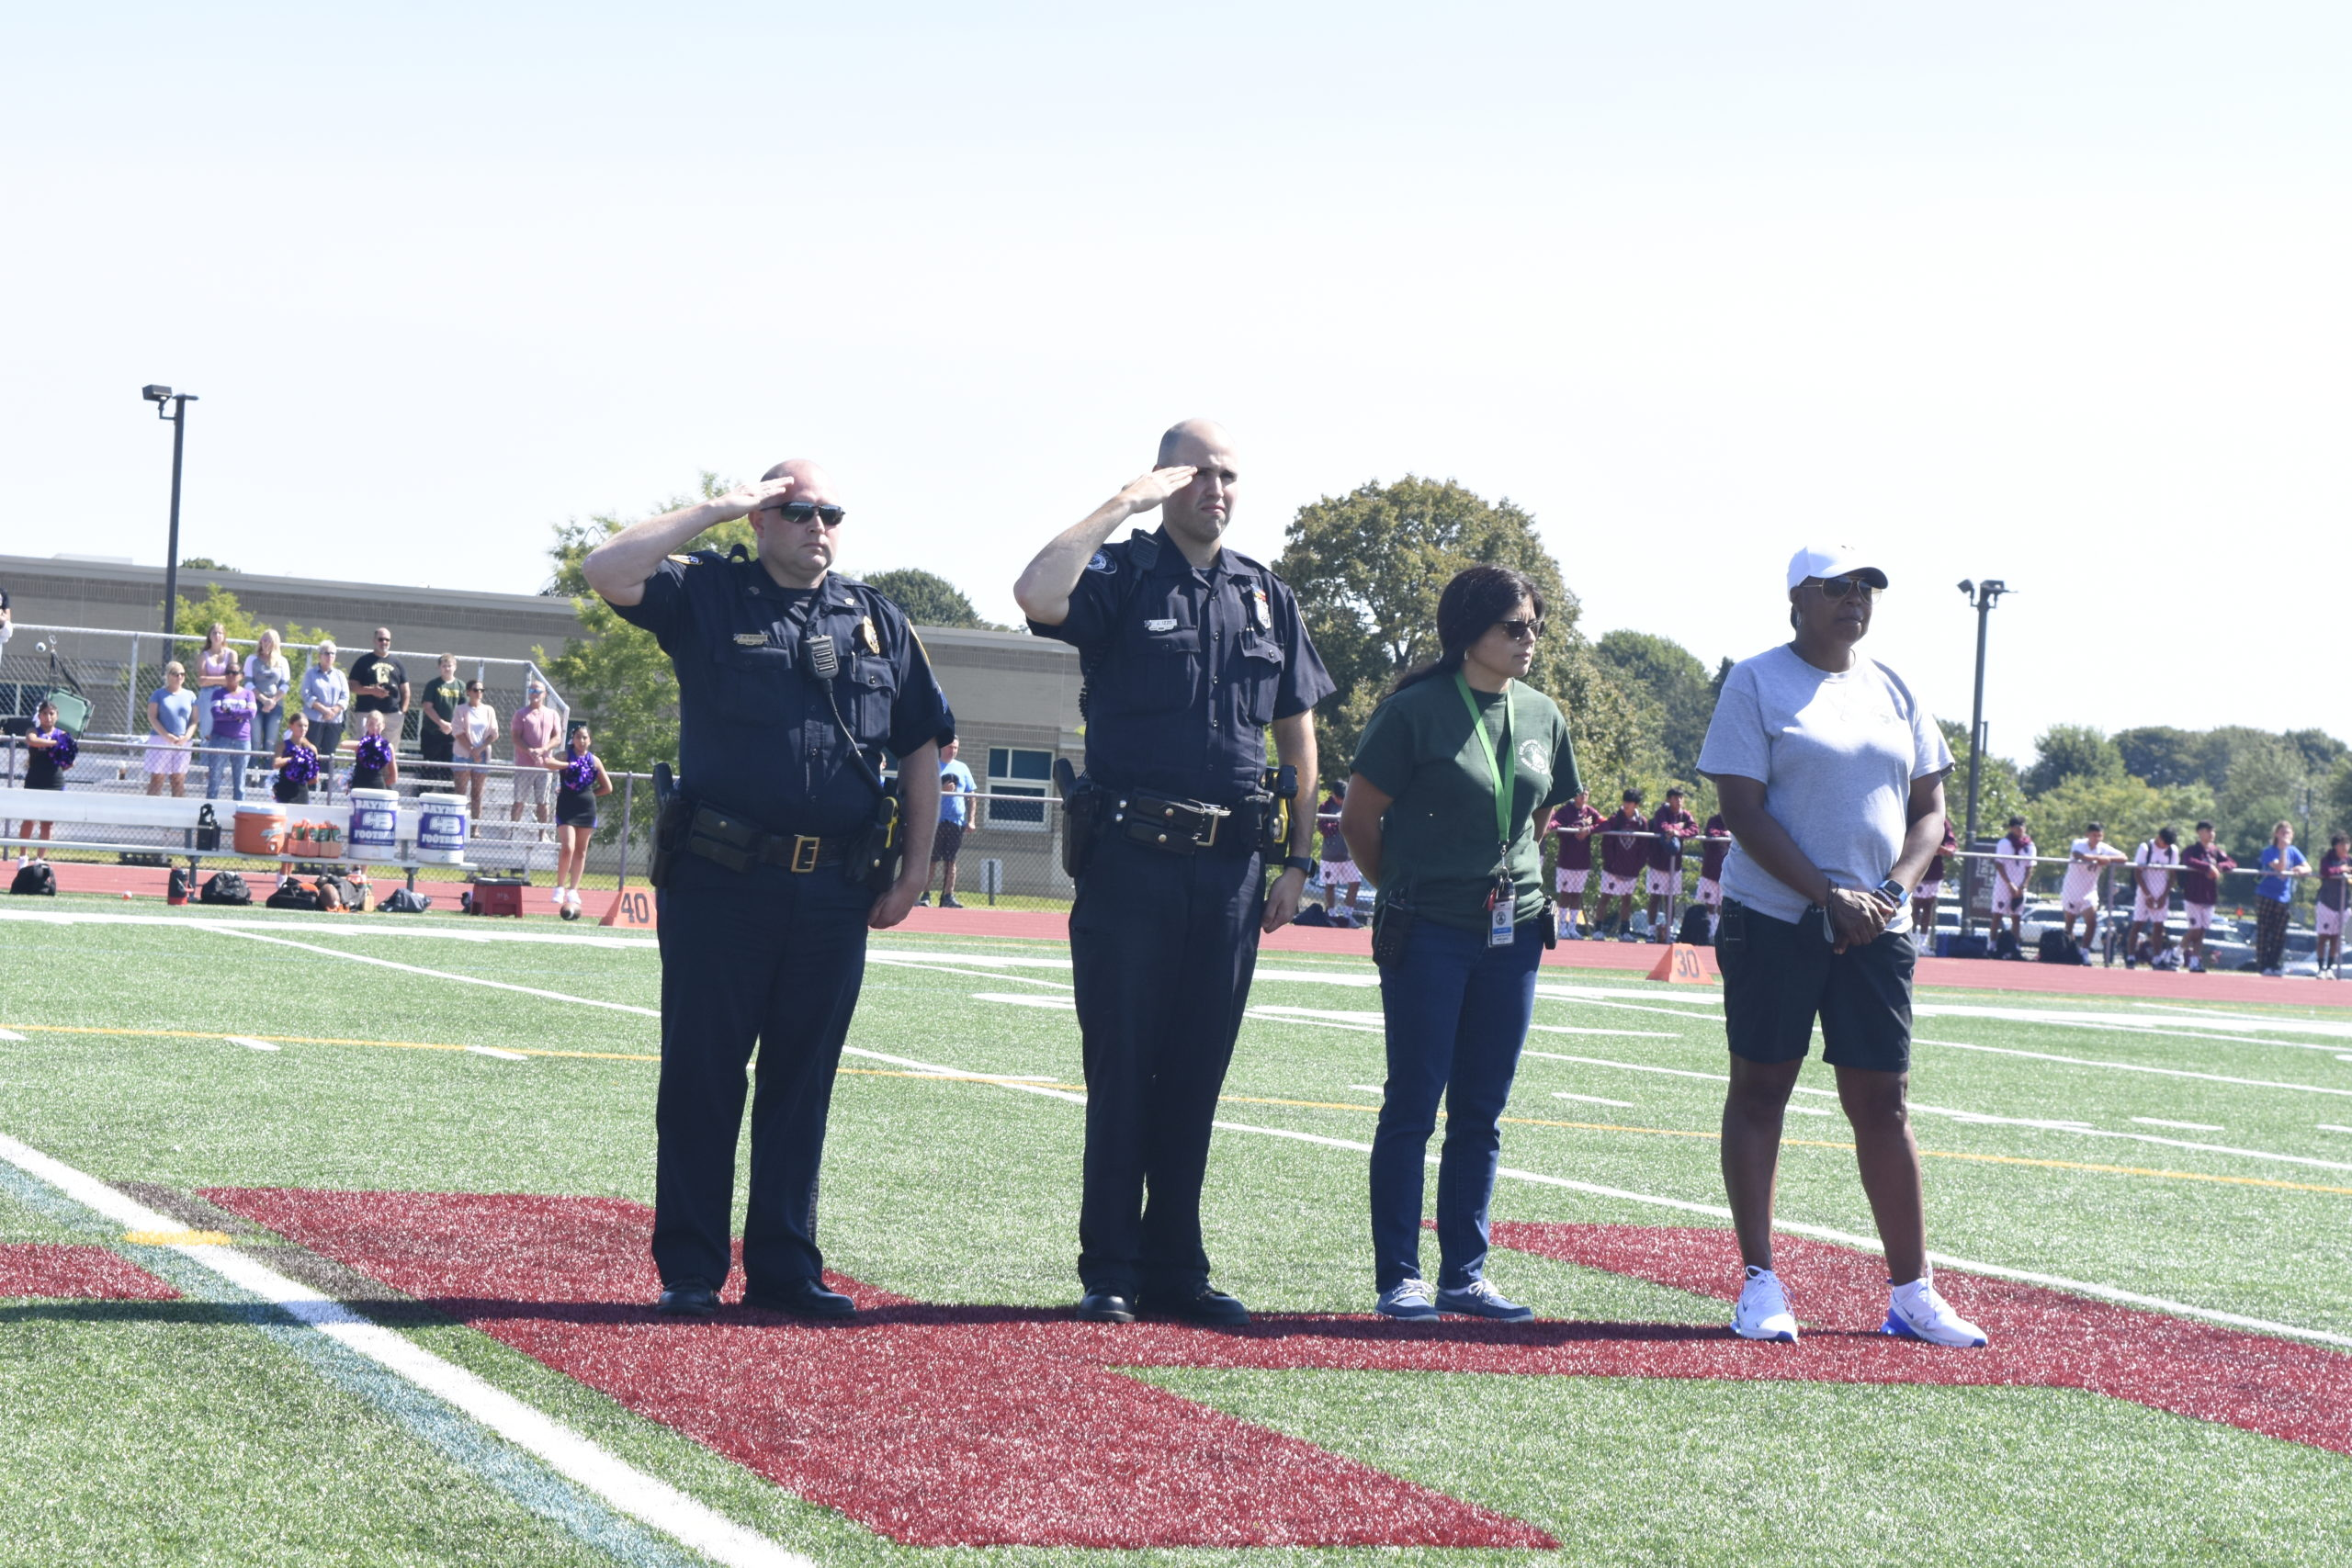 East Hampton Village Police Officer Matthew Morgan, left, East Hampton Town Police Officer Joseph Izzo and East Hampton Village Ambulance members Marcia Dias and Samone Johnson salute the American flag during the singing of the Star Spangled Banner prior to the East Hampton football game this past Saturday, September 11.